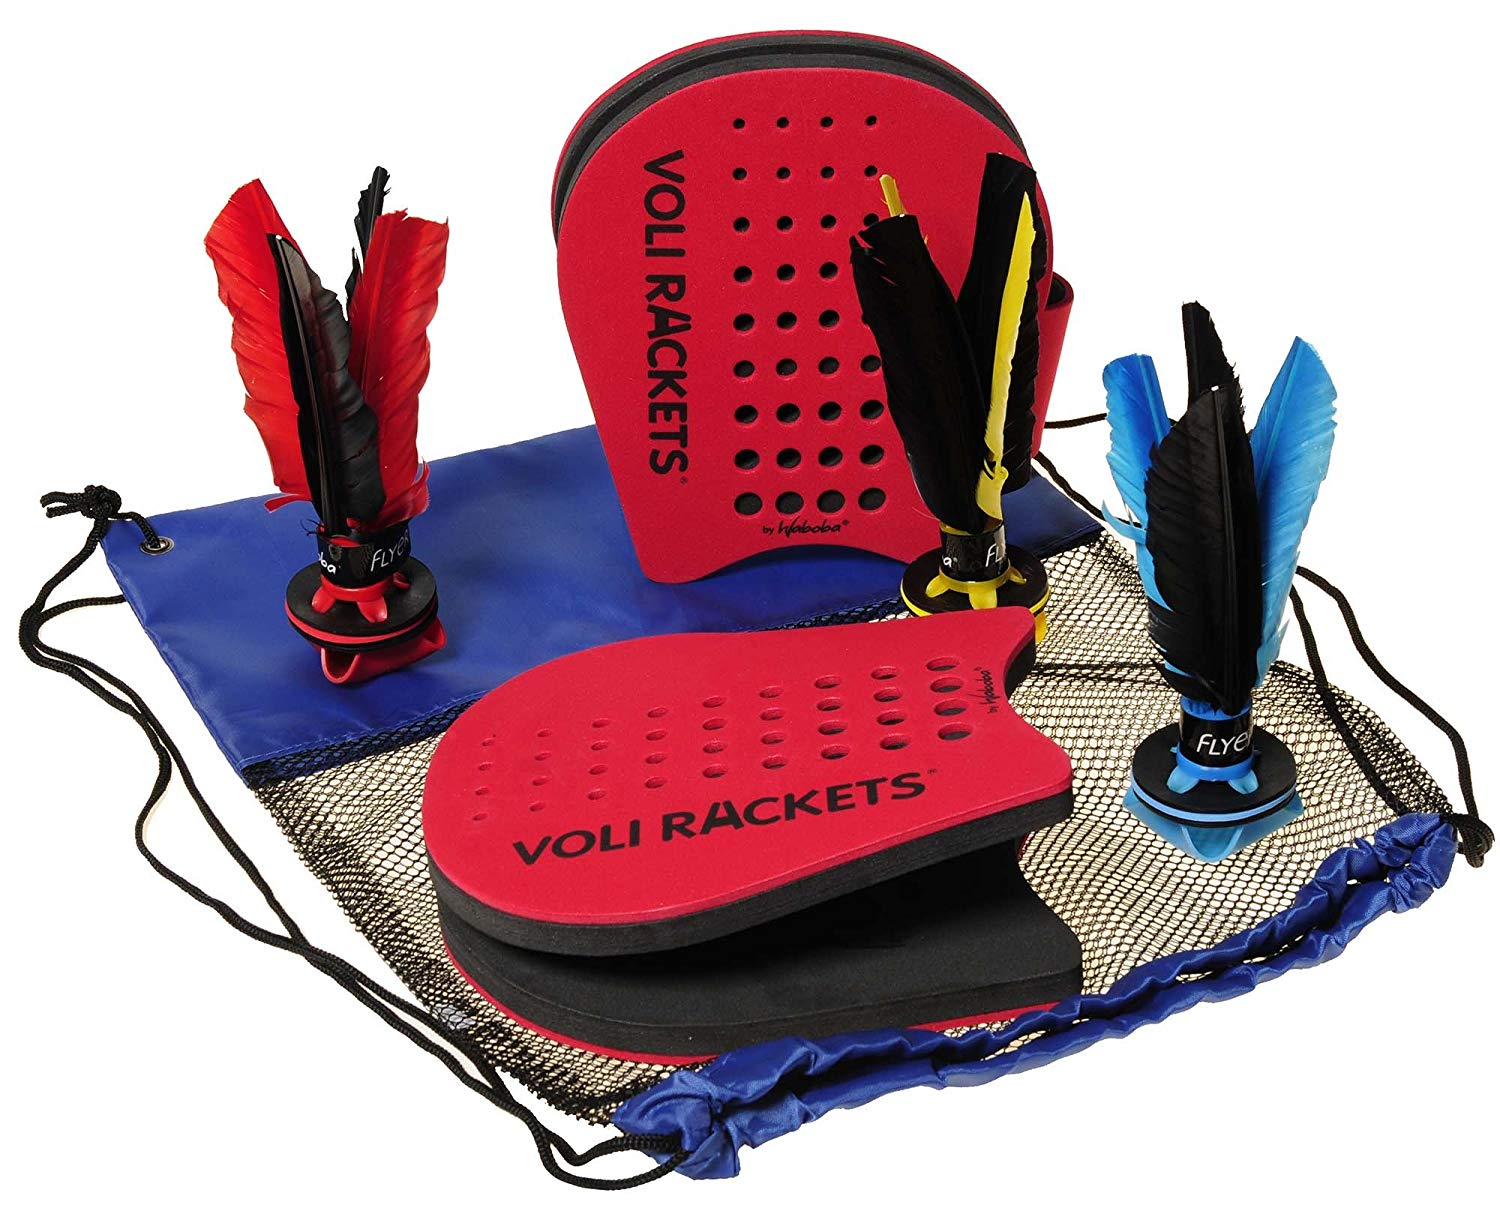 Waboba VOLI Racket Set (2 Paddles and Flyer) with 2 Extra FLYERS Random Colors_ Bonus BLUE Nylon/Black Mesh Drawstring Carry Pack Bundled Items